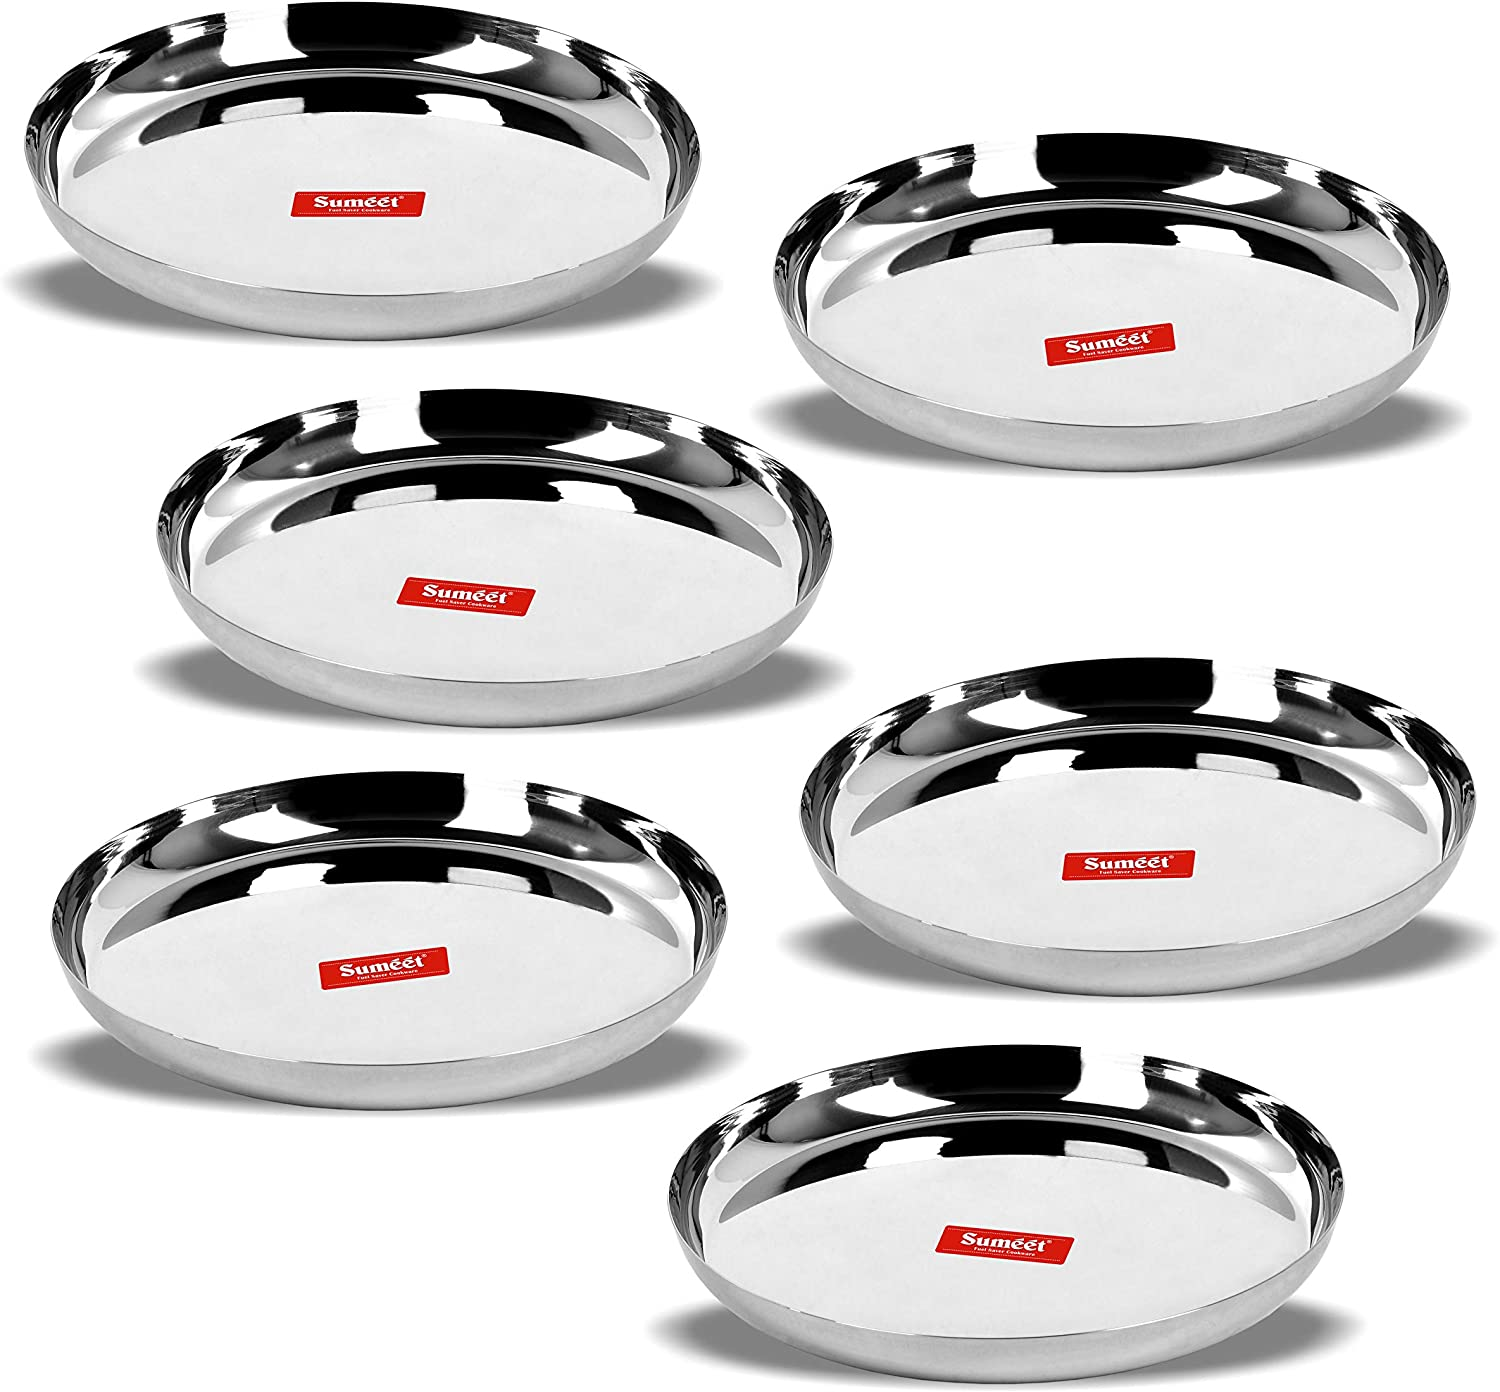 Sumeet Stainless Steel Apple Shape Heavy Gauge Dinner Plates with Mirror Finish 29.5cm Dia - Set of 6pc